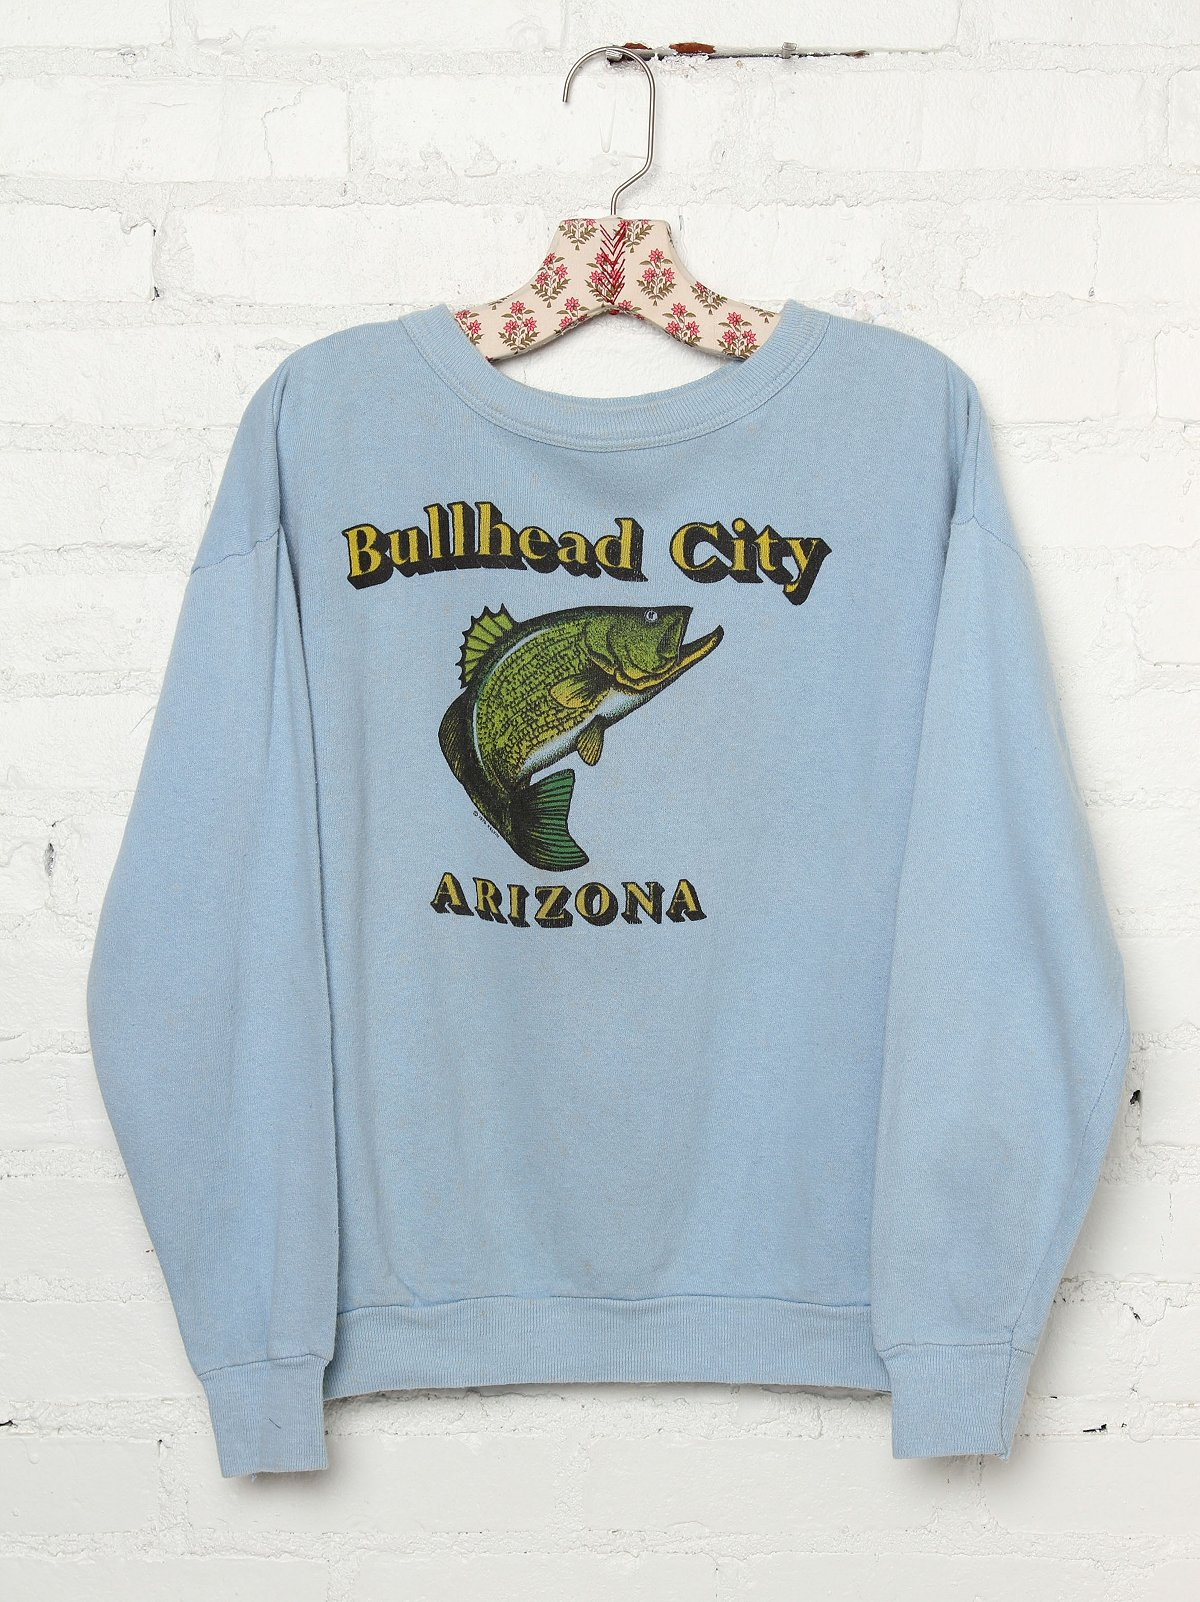 Vintage Bullhead City, Arizona Graphic Pullover